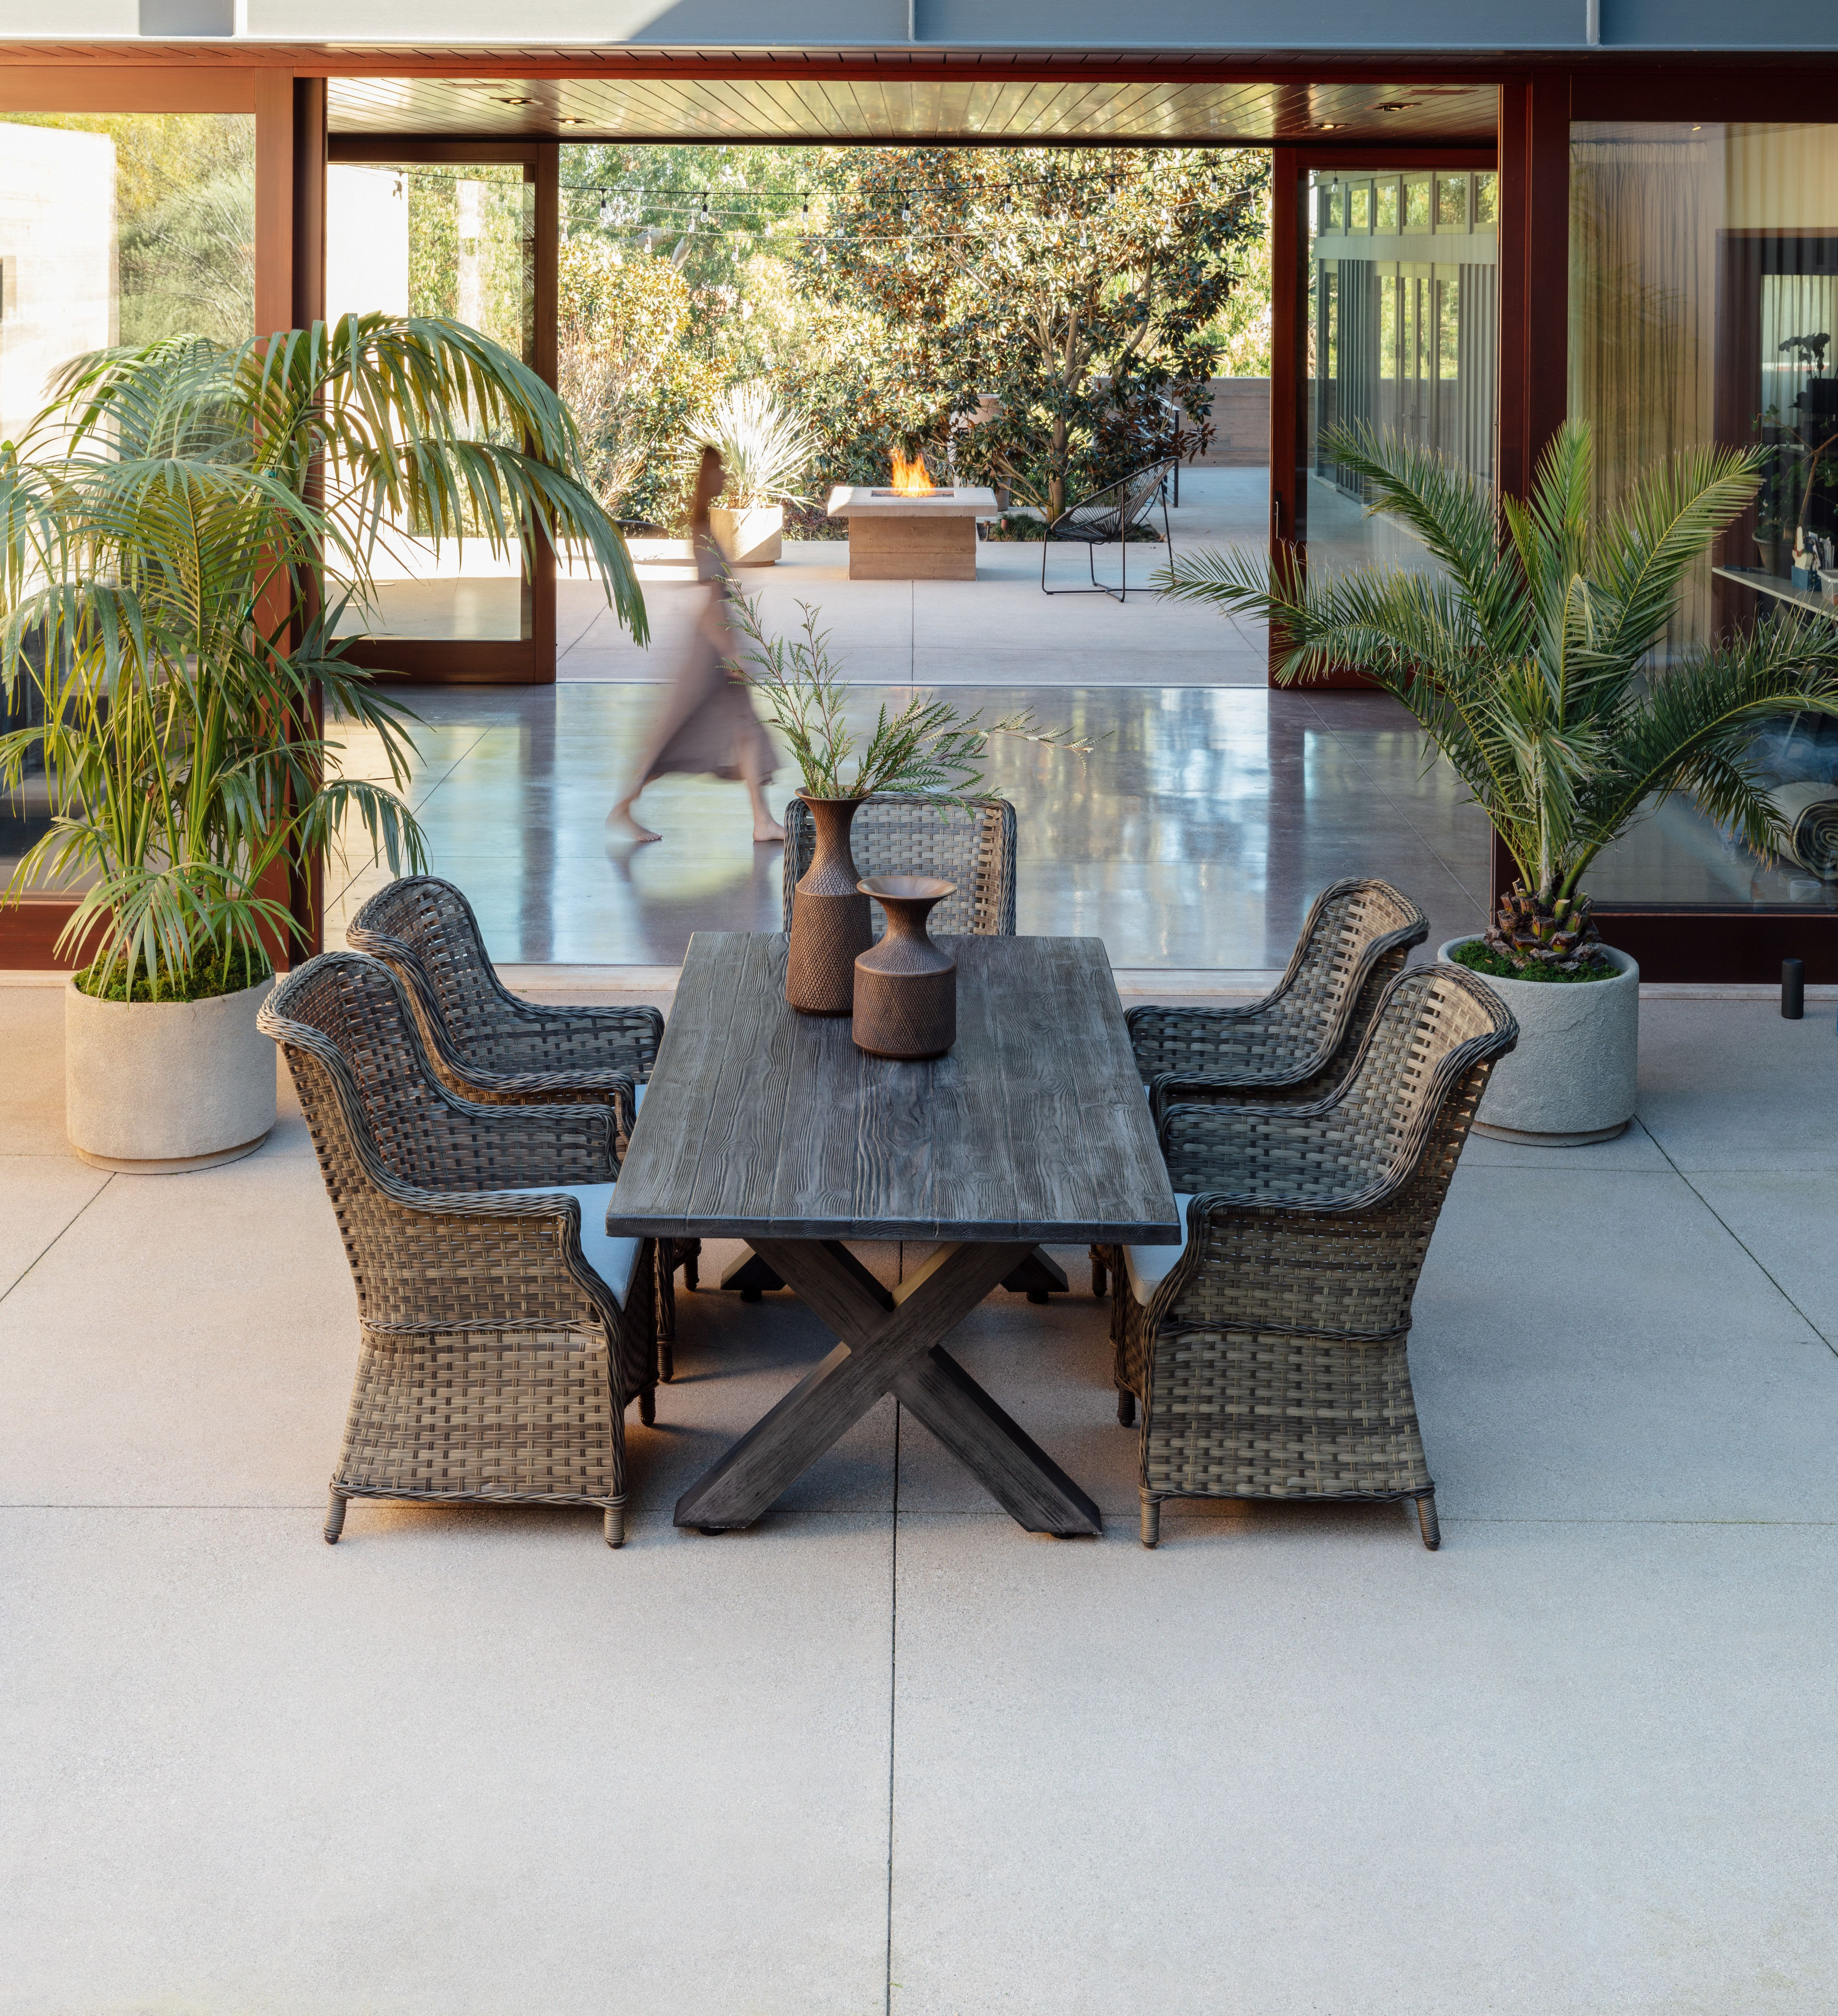 The Outdoor Tortuga 7 Piece Dining Set with Aventura Side ... on Living Spaces Outdoor Dining id=49276